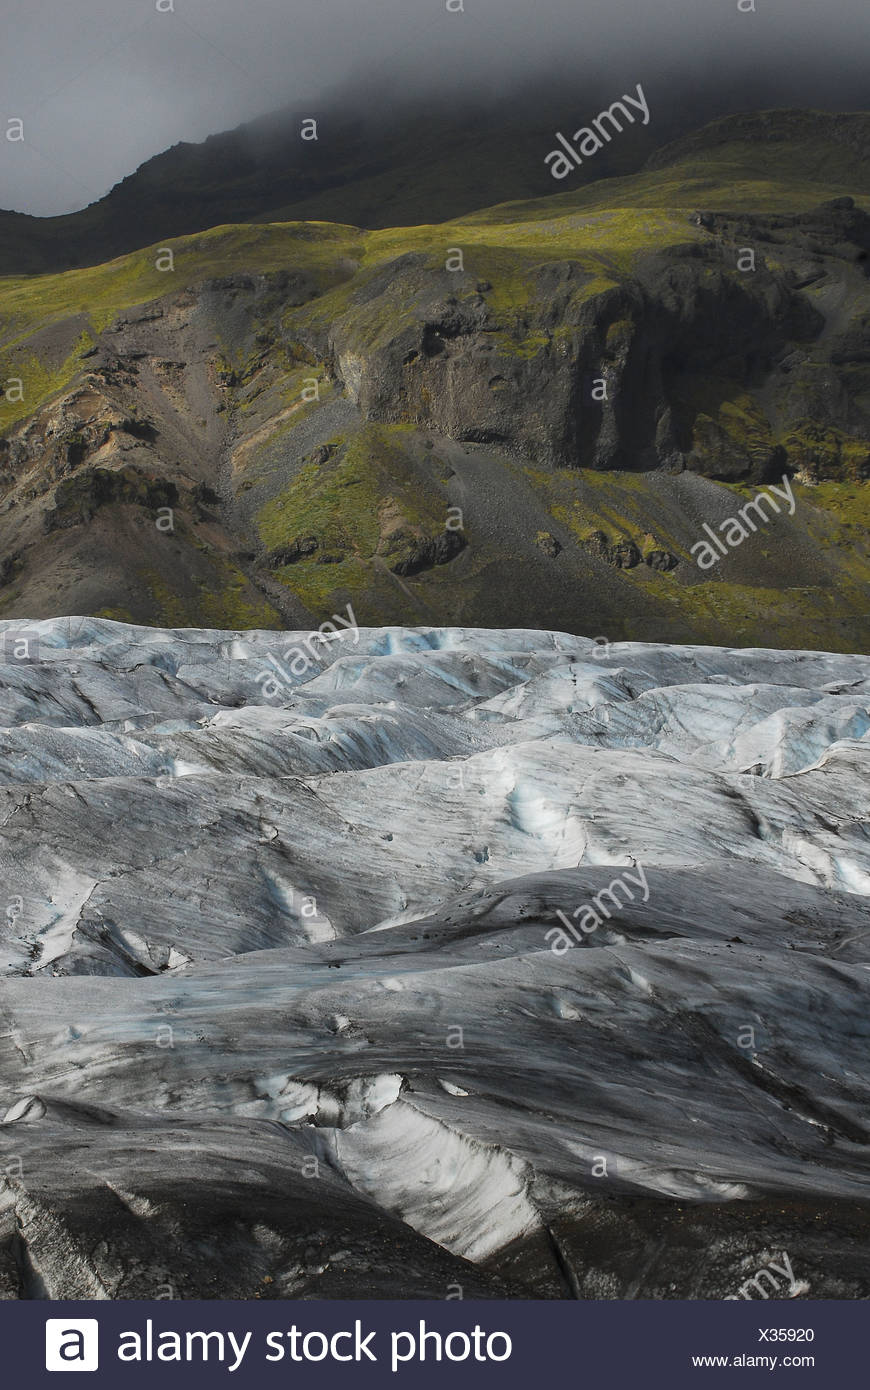 View of glacier Skálafellsjökull Part of the glacier Vatnajökull, the largest glacier of Iceland and Europe - Stock Image